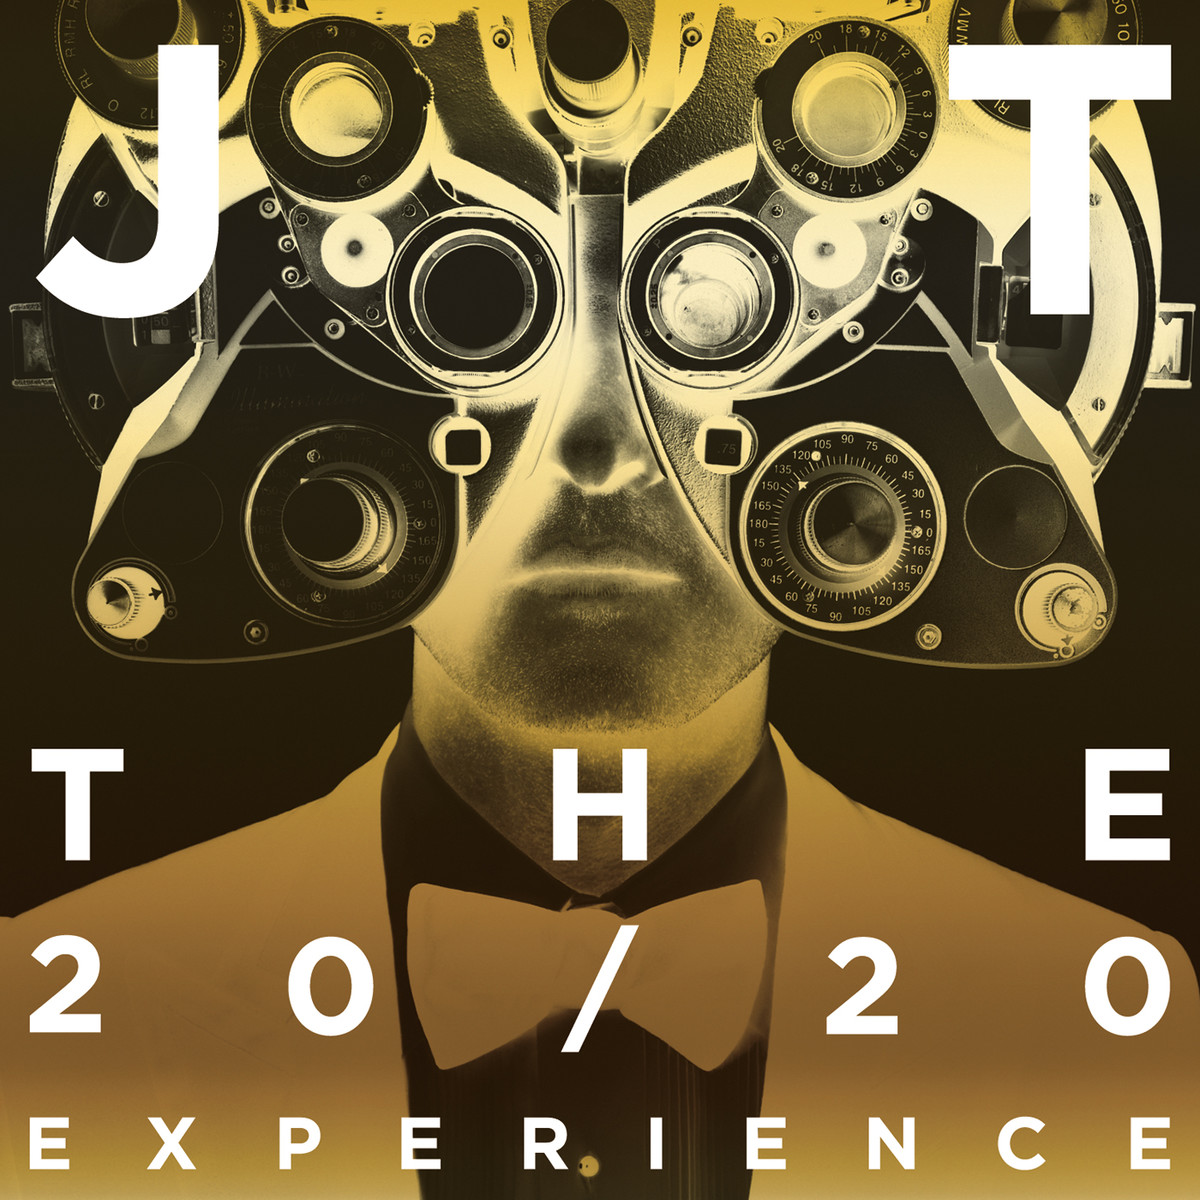 the timbaland passion justin timberlake the 20 20 experience part 2 tracklisting. Black Bedroom Furniture Sets. Home Design Ideas